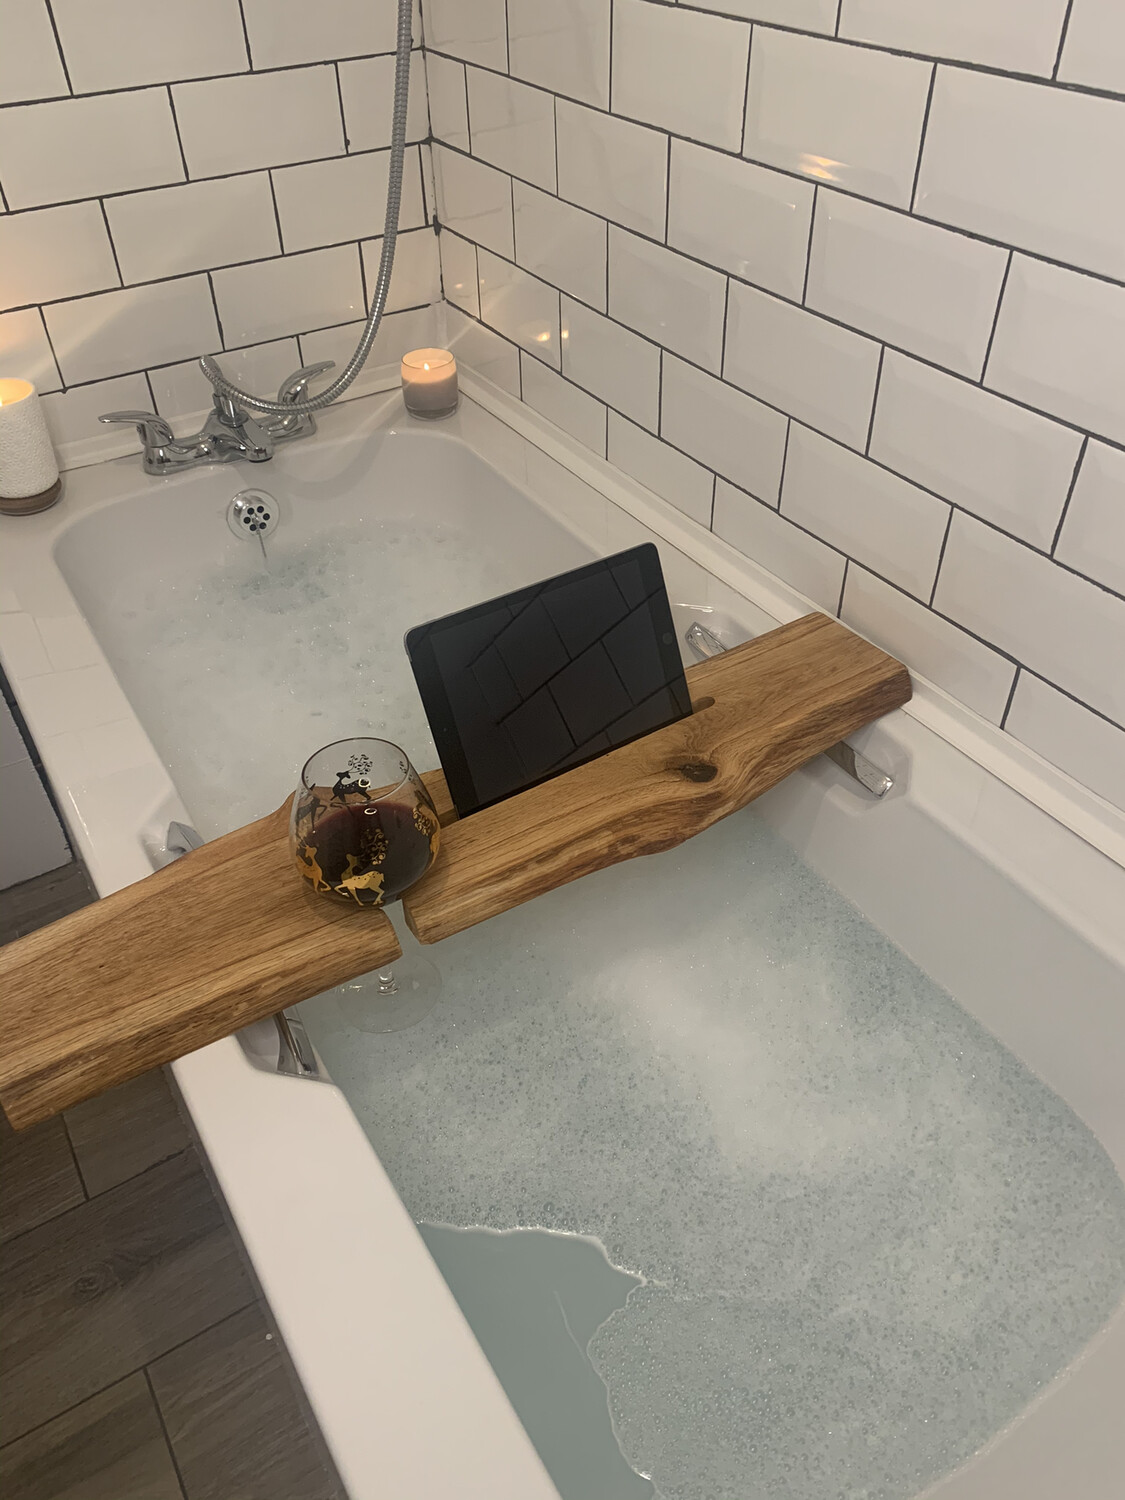 Live Edge Brown Oak Bespoke Rustic Bath Caddy Tray Readymade